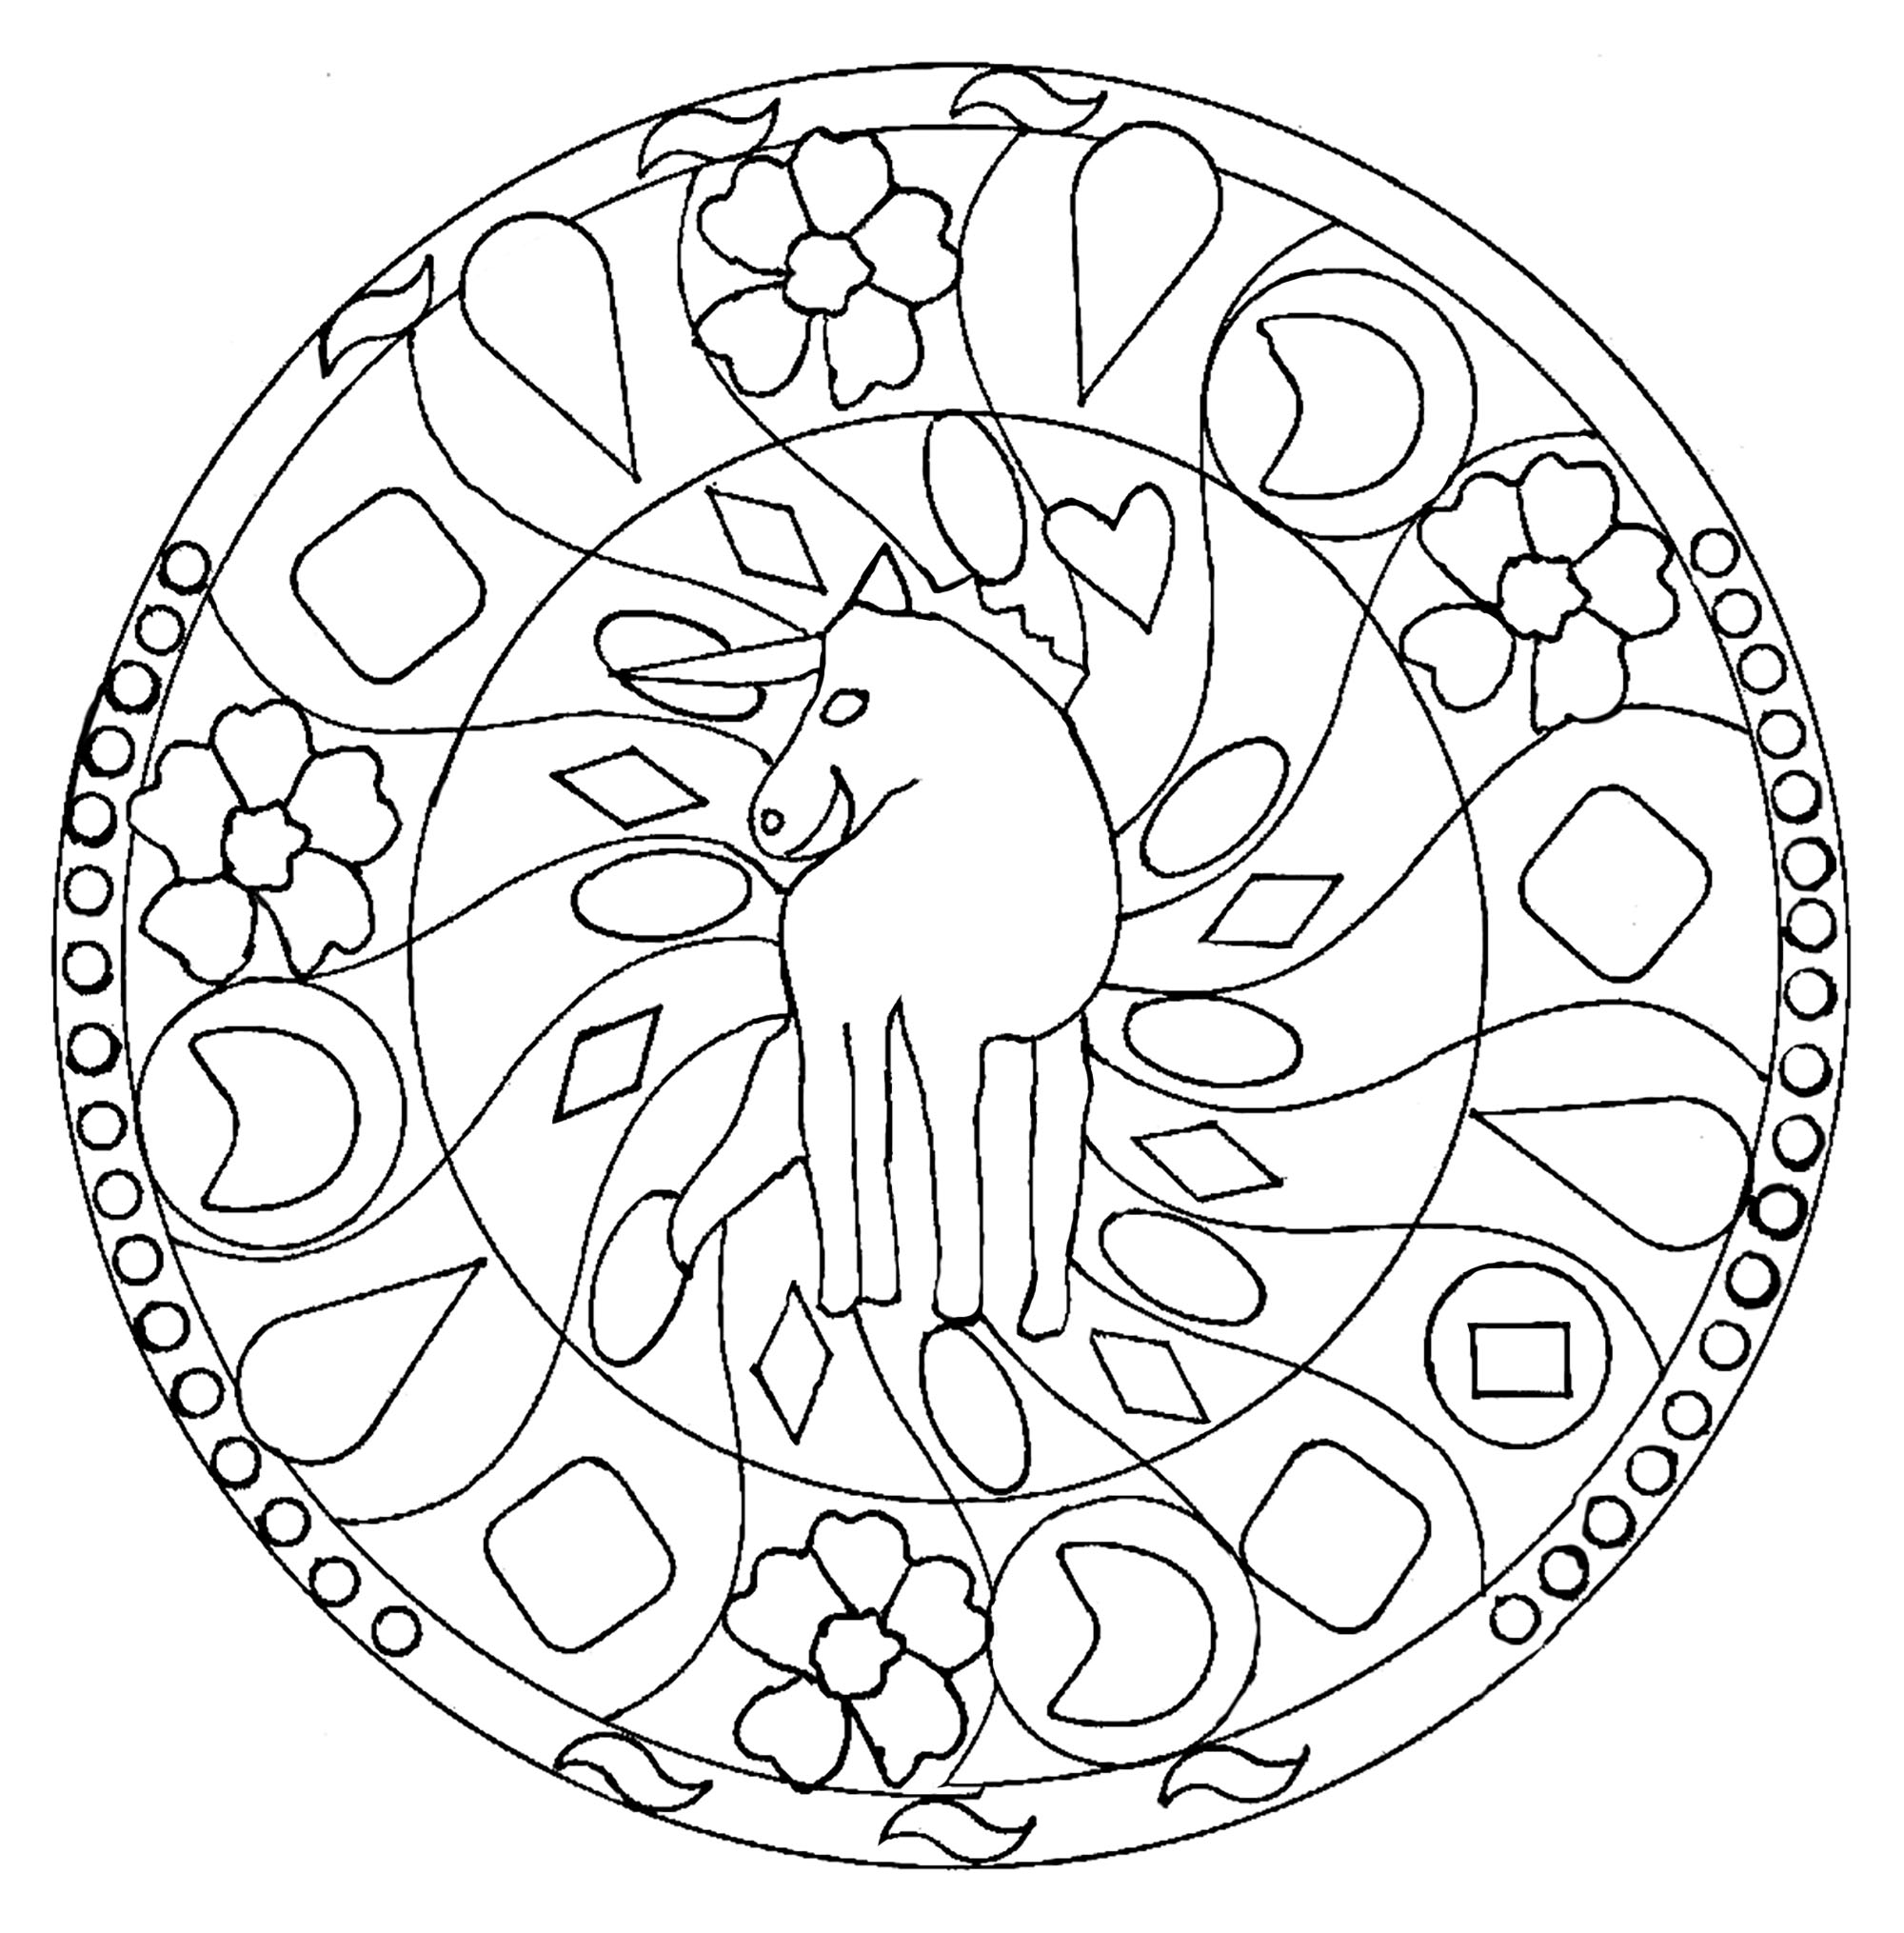 easy animal mandala coloring pages turtle animals coloring pages 100 mandalas zen anti mandala pages easy coloring animal